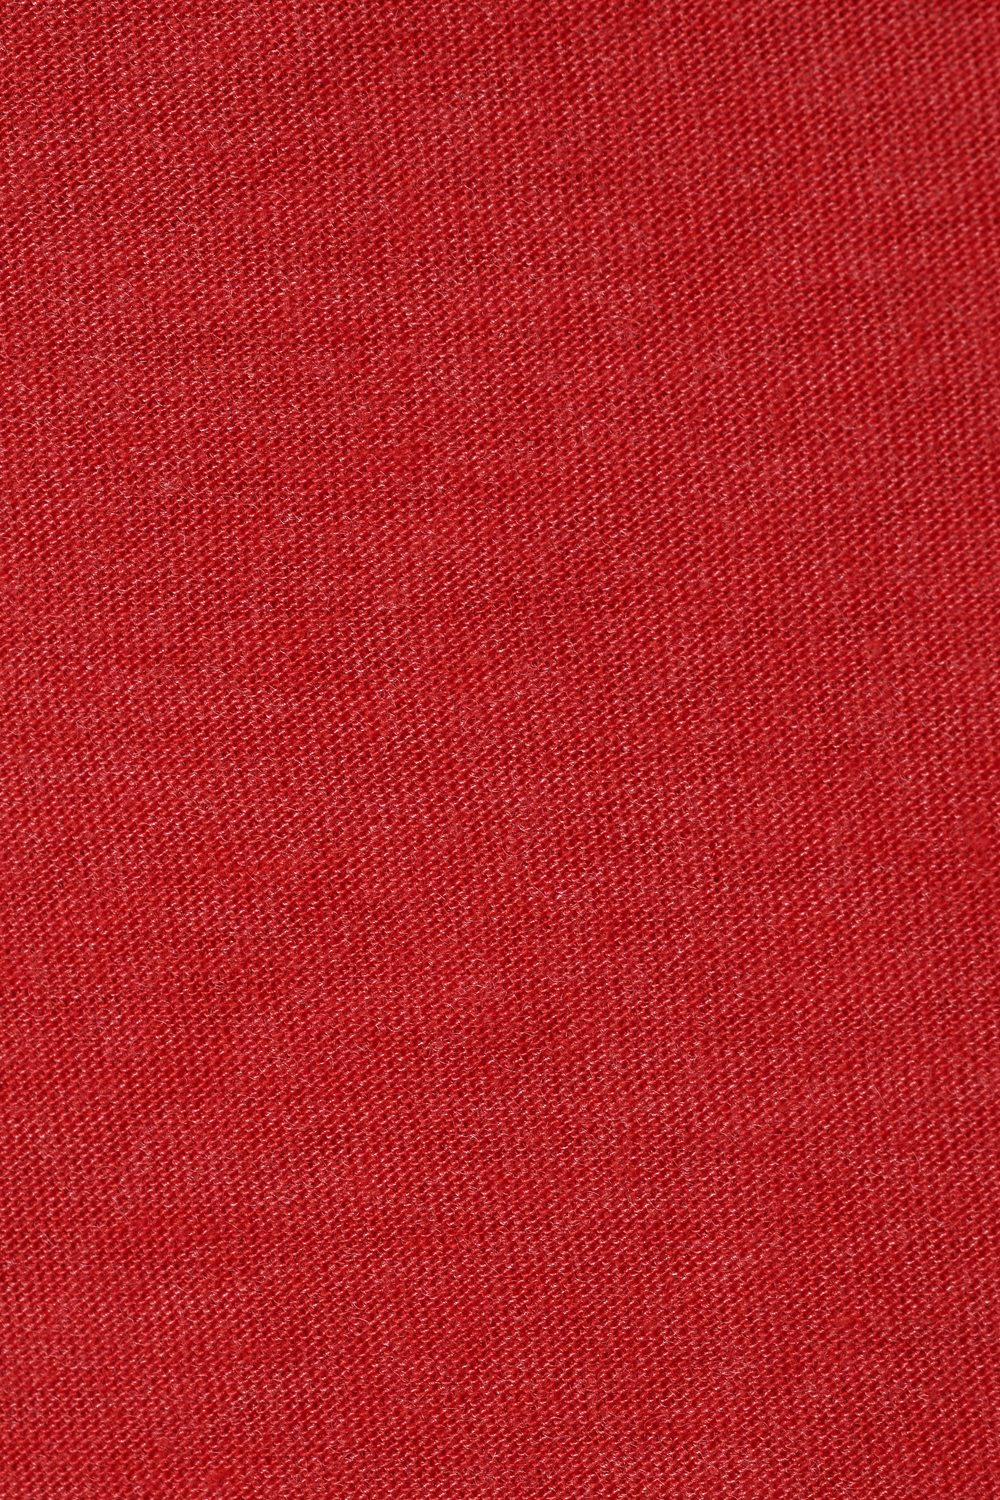 Heather Red PC.JPG